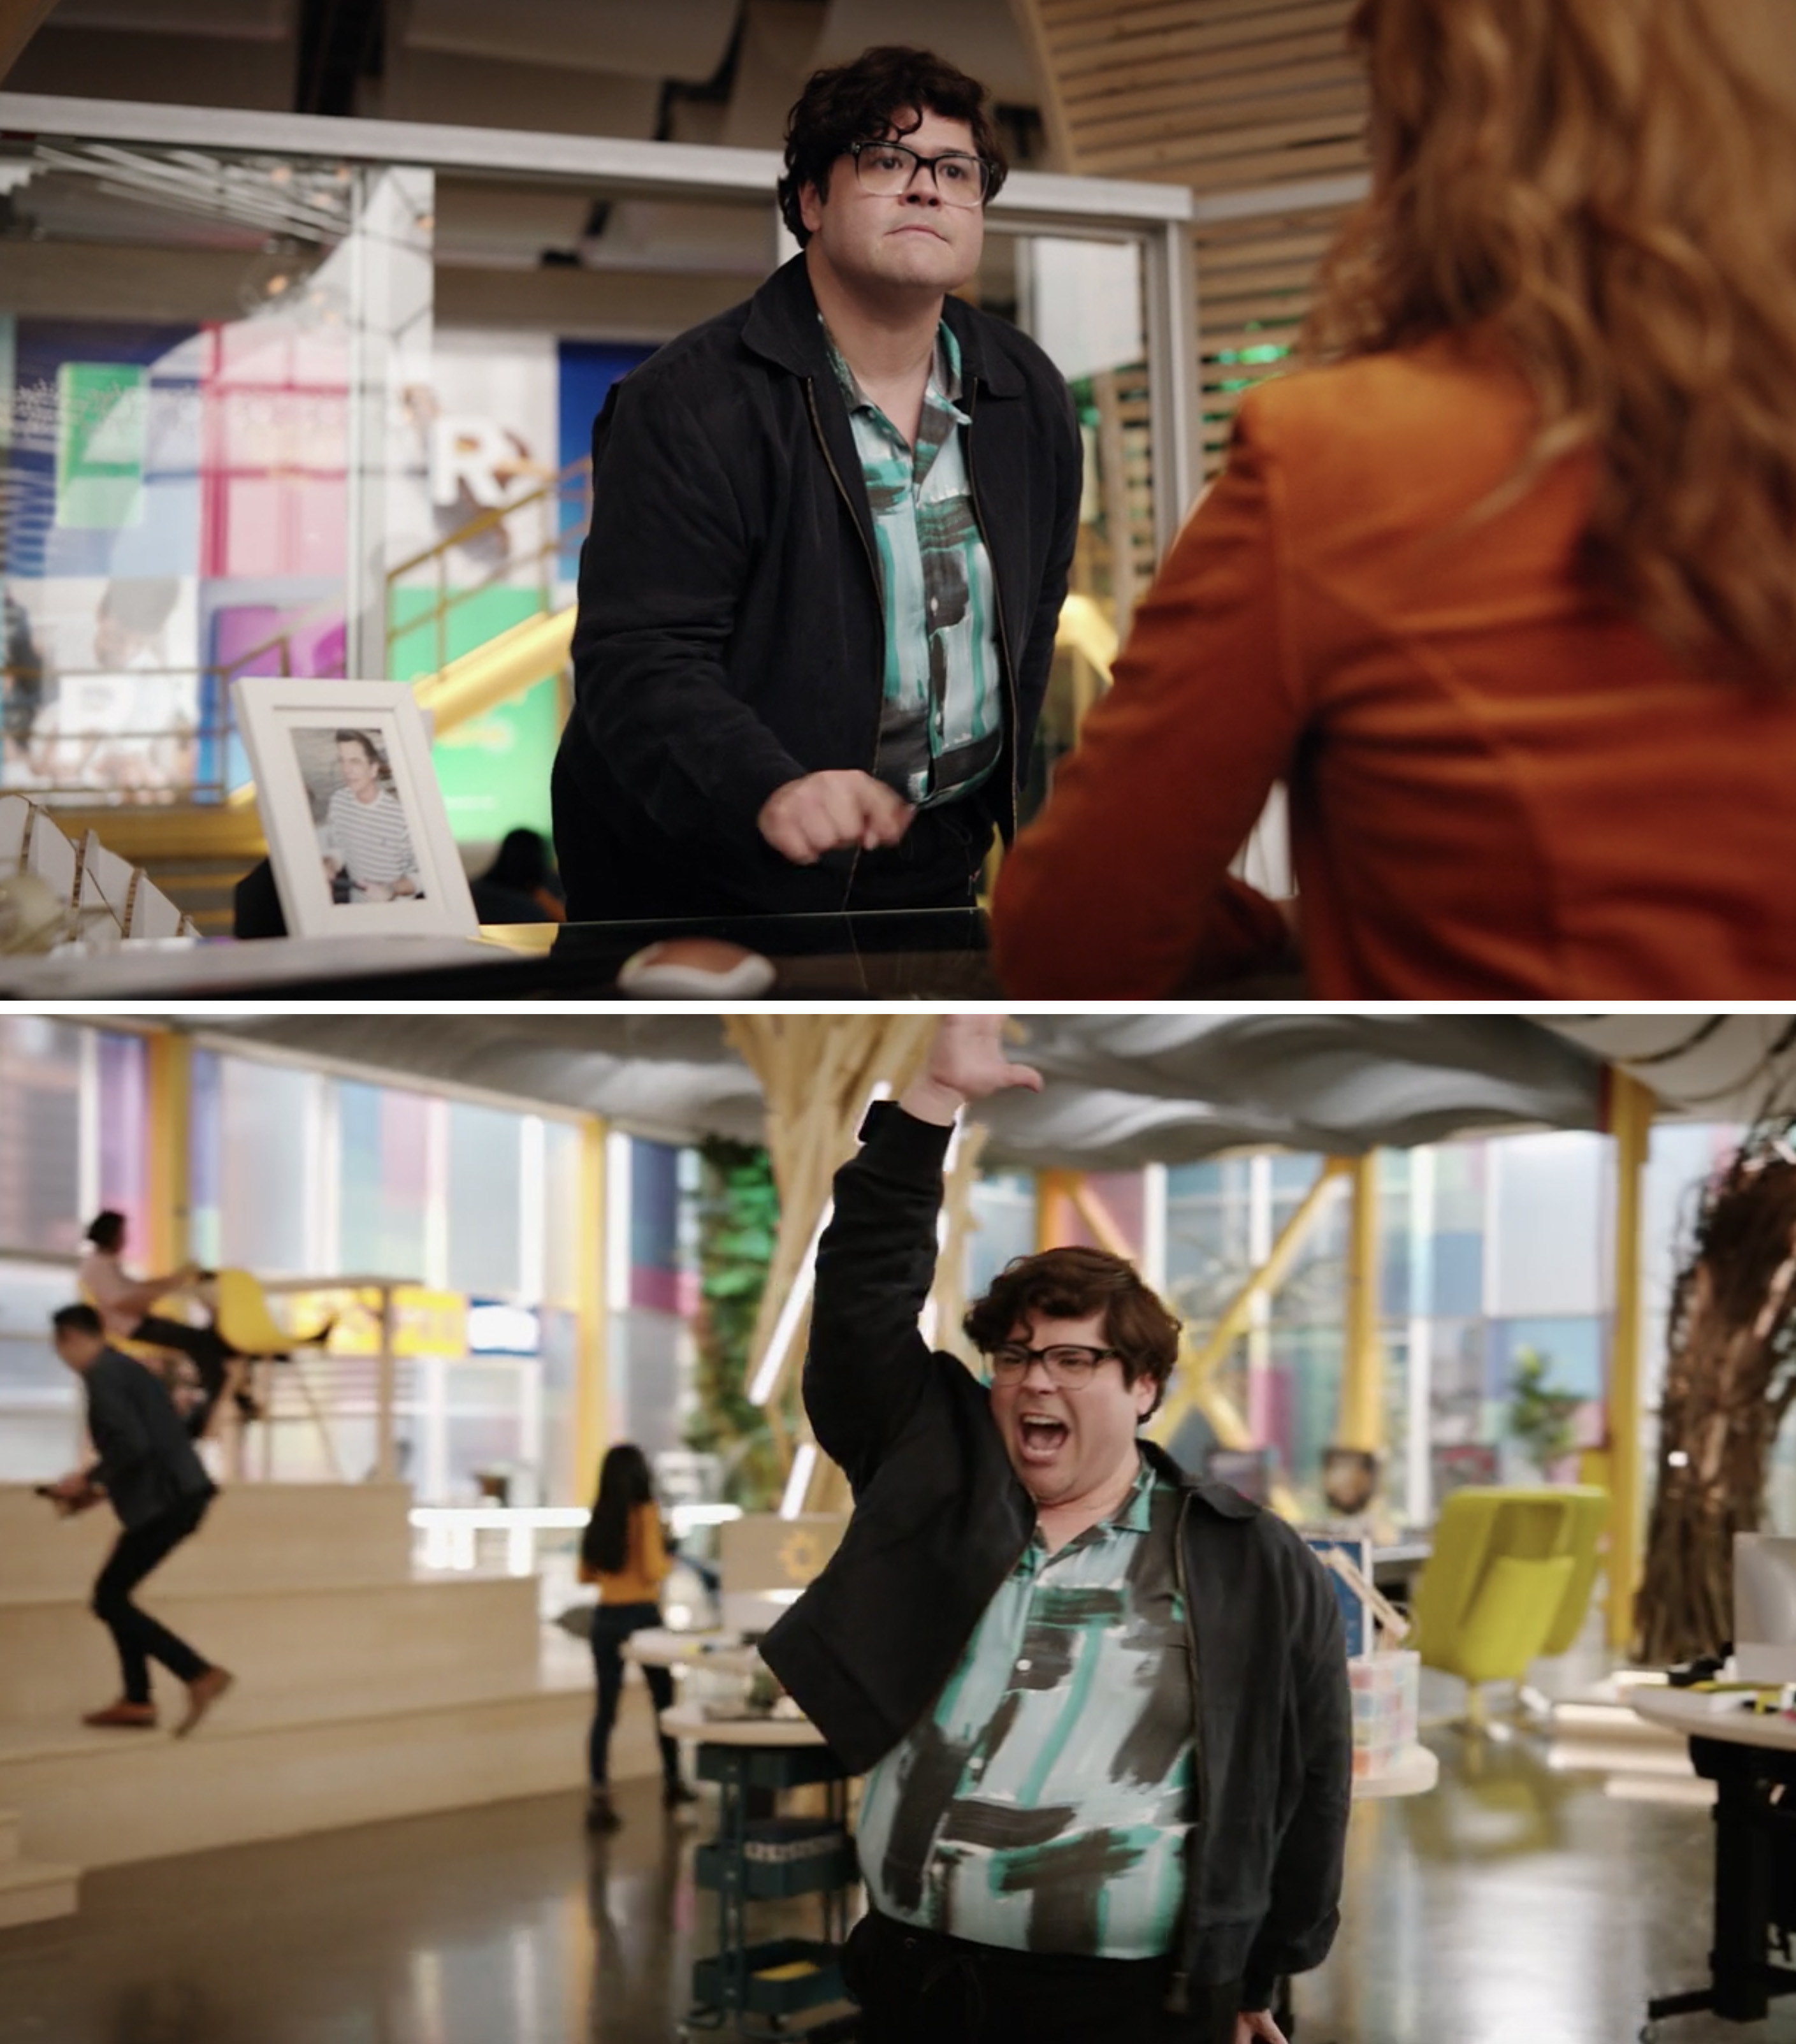 George dancing inside the office